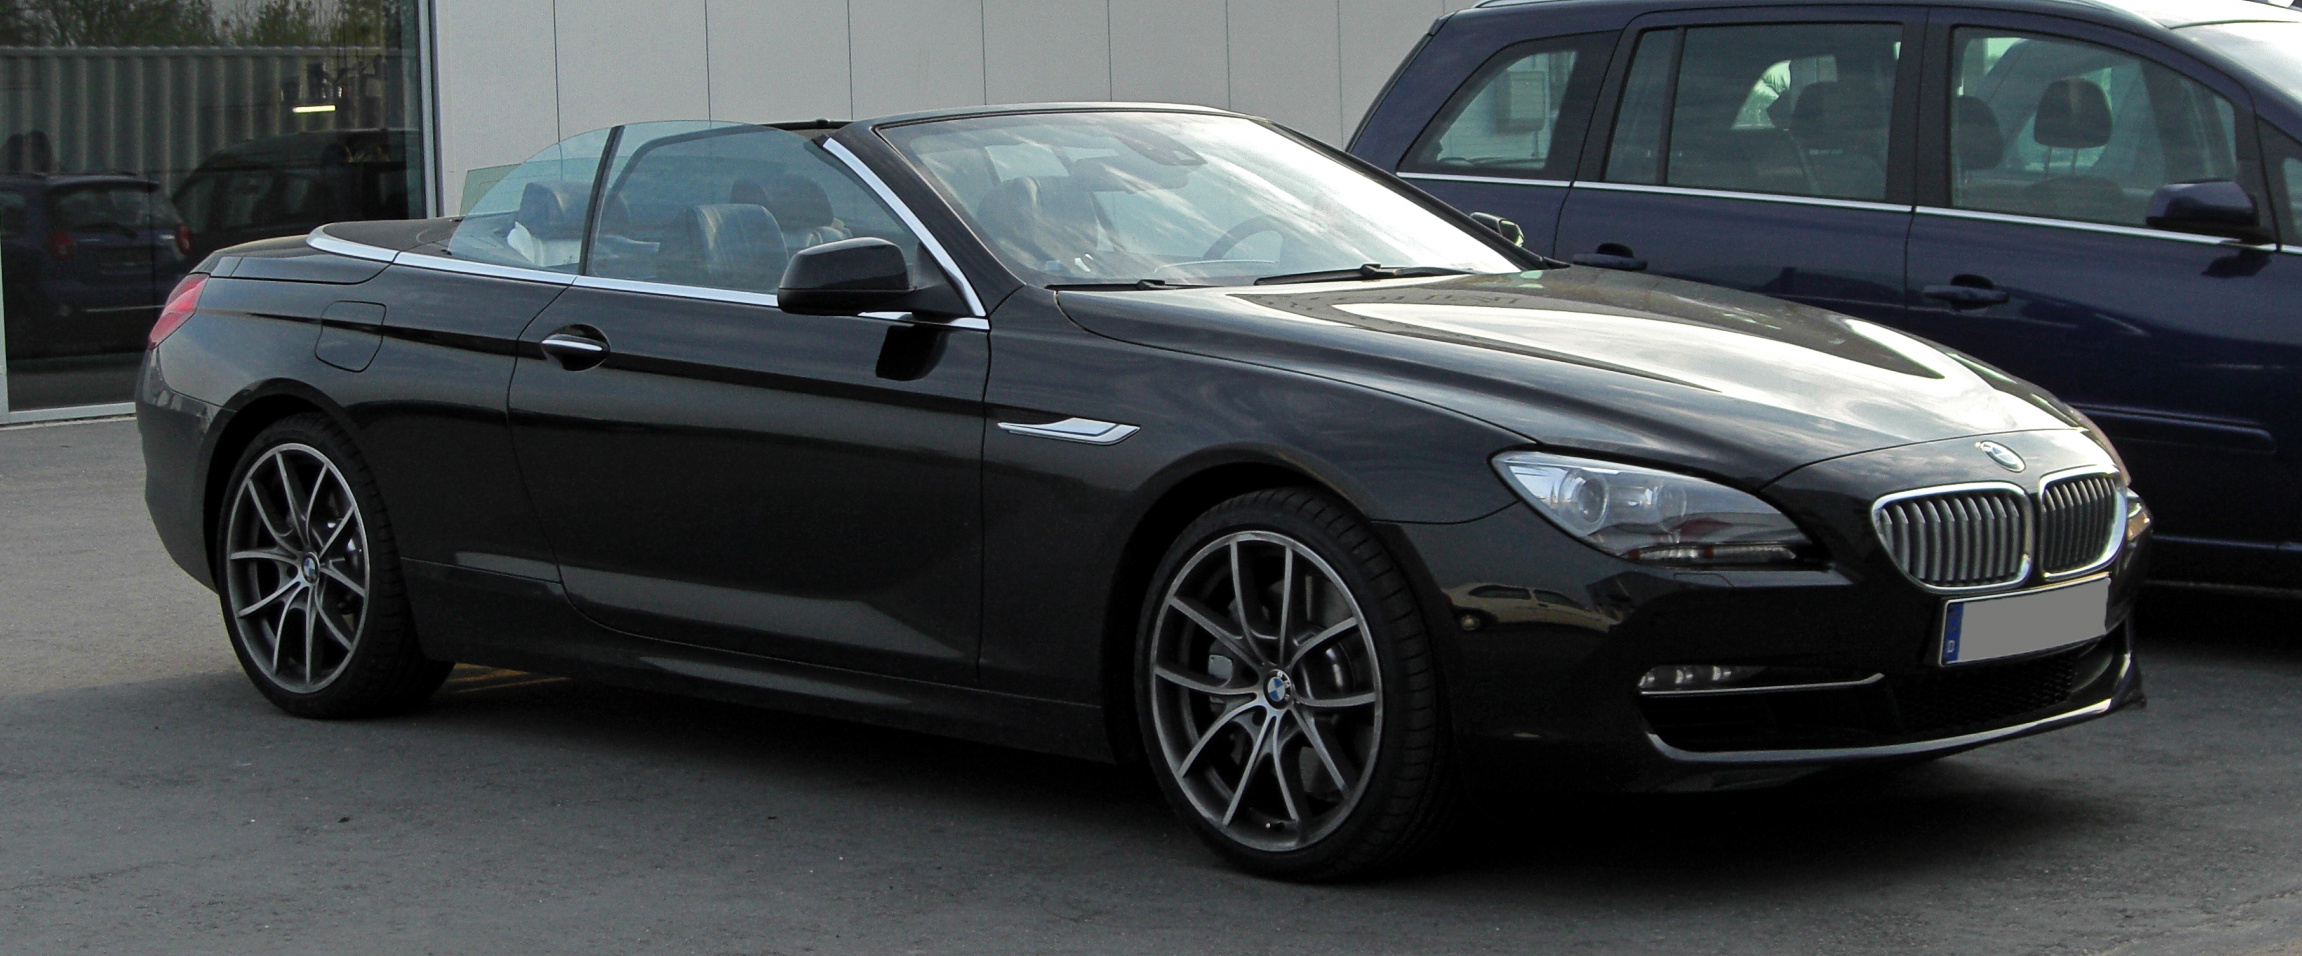 File Bmw 650i Cabriolet F12 Frontansicht 8 April 2011 Mettmann Jpg Wikimedia Commons